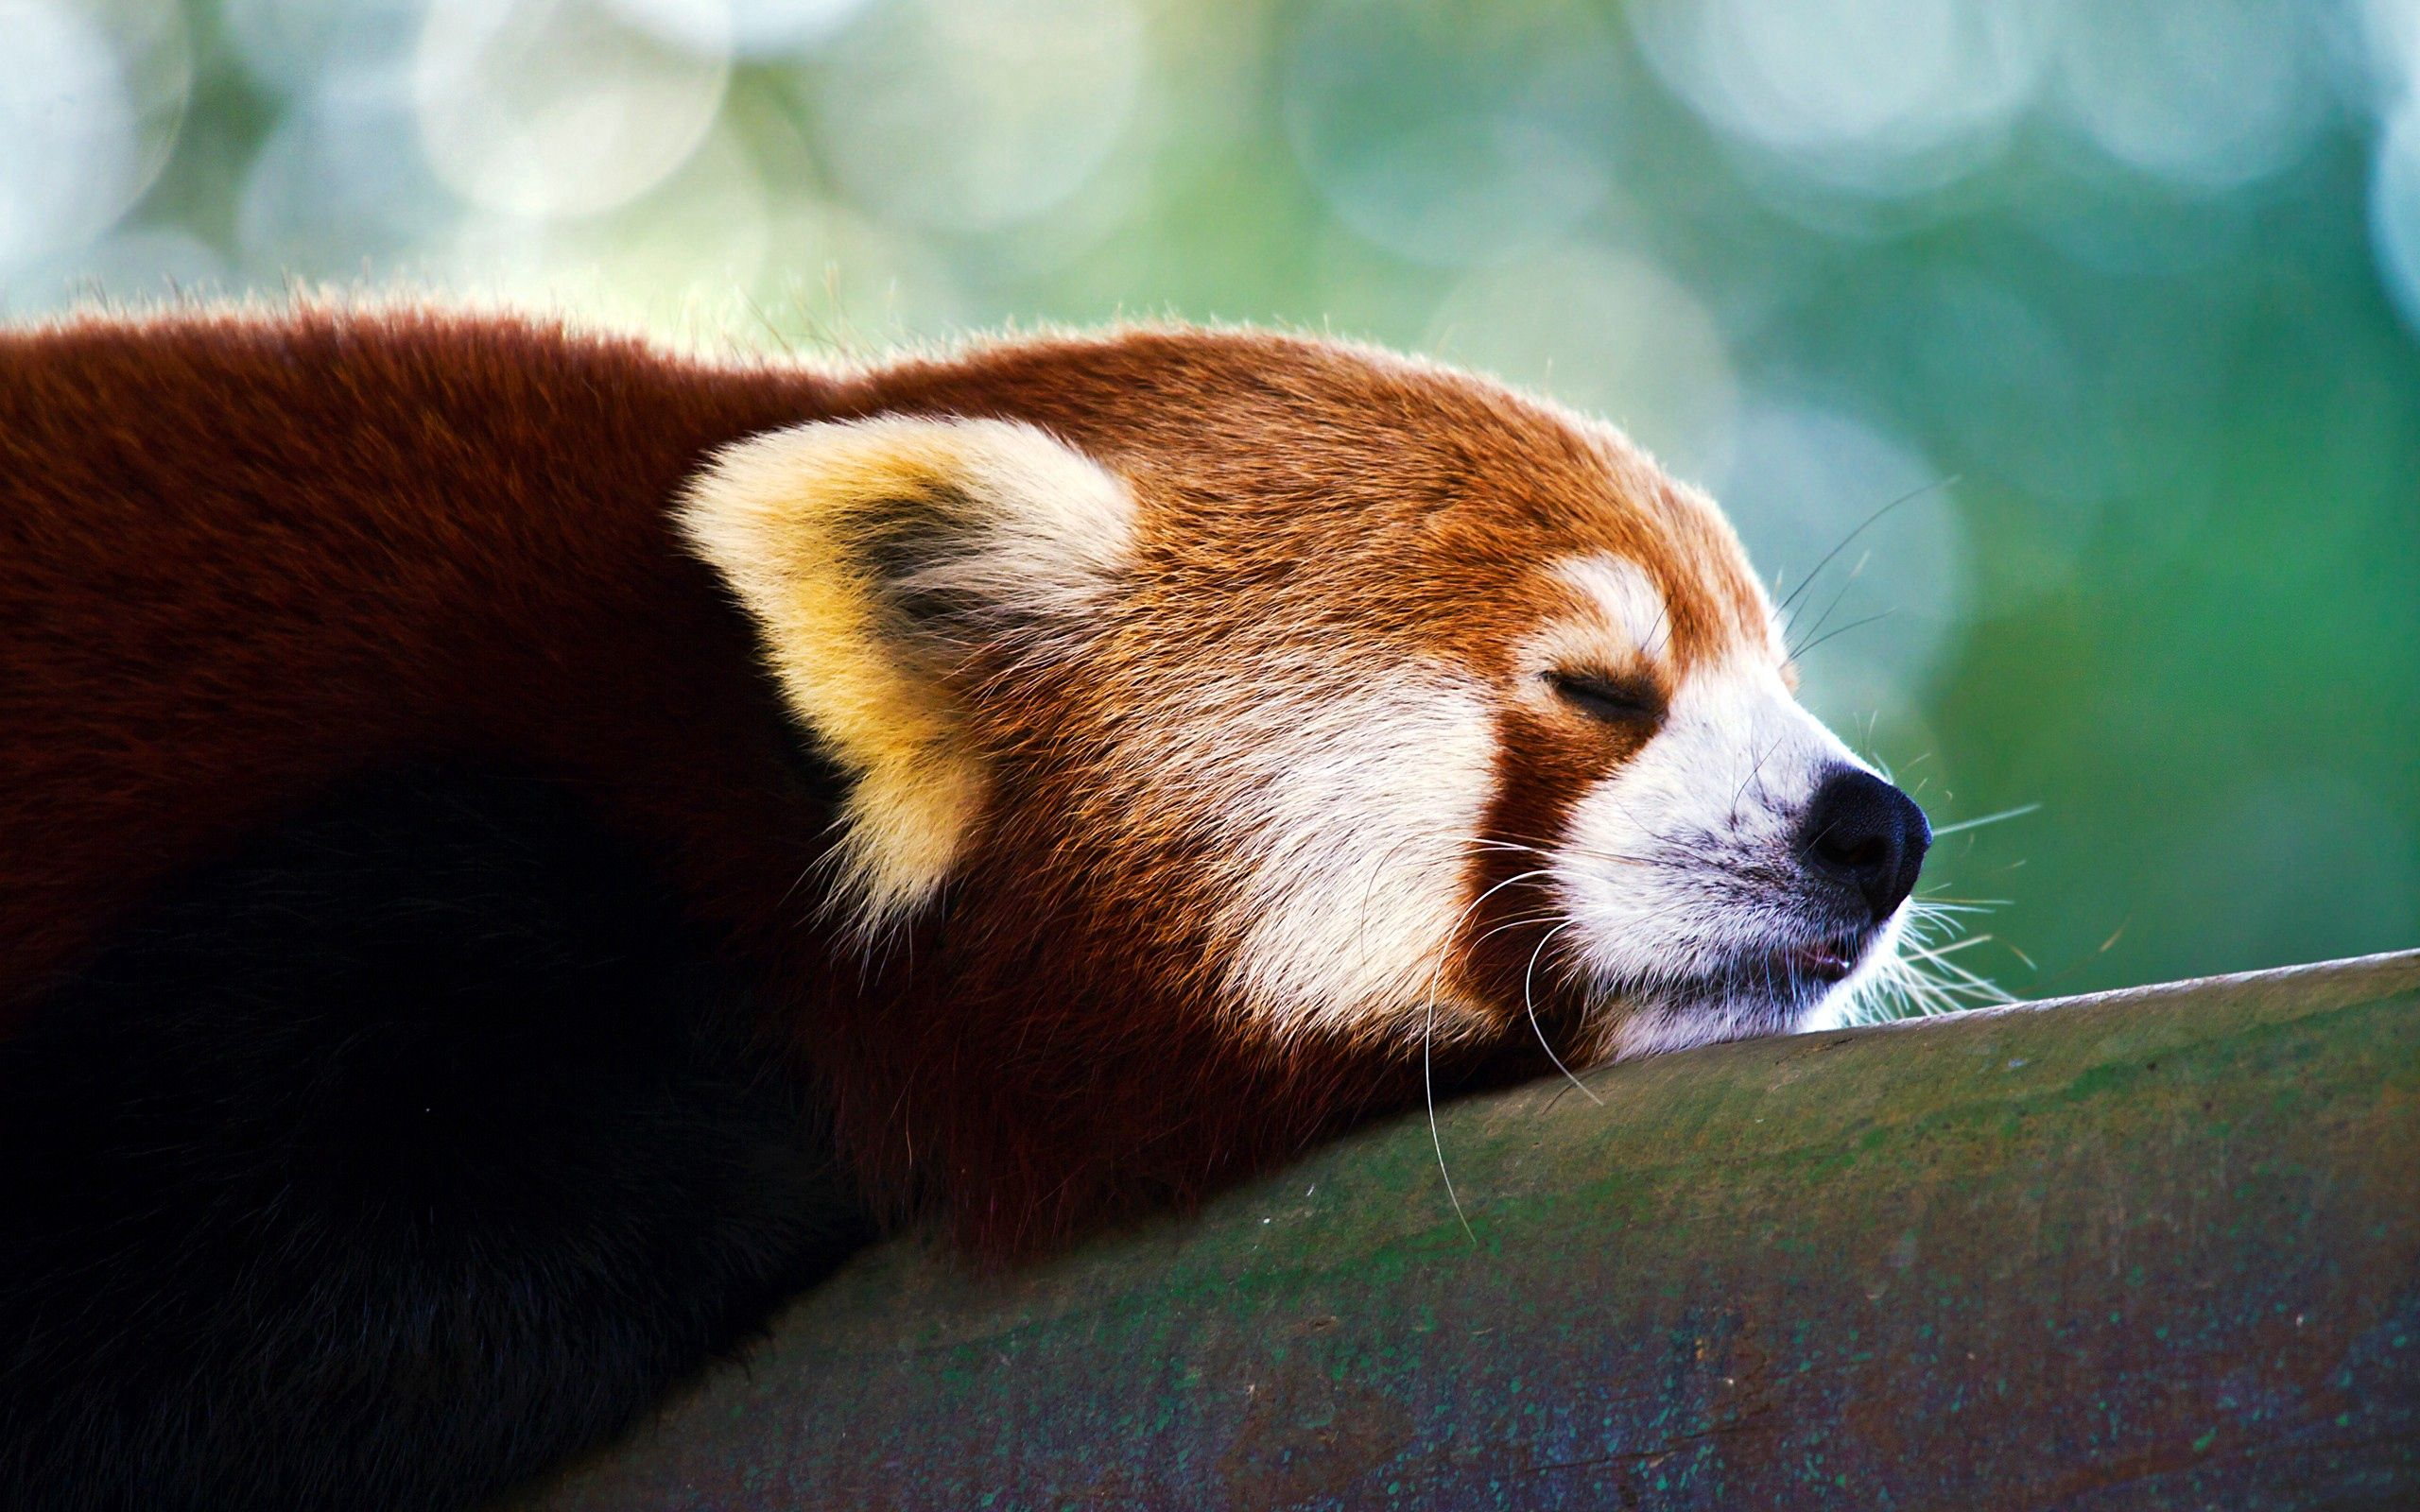 147906 download wallpaper Animals, Panda, Sleep, Dream, Muzzle screensavers and pictures for free